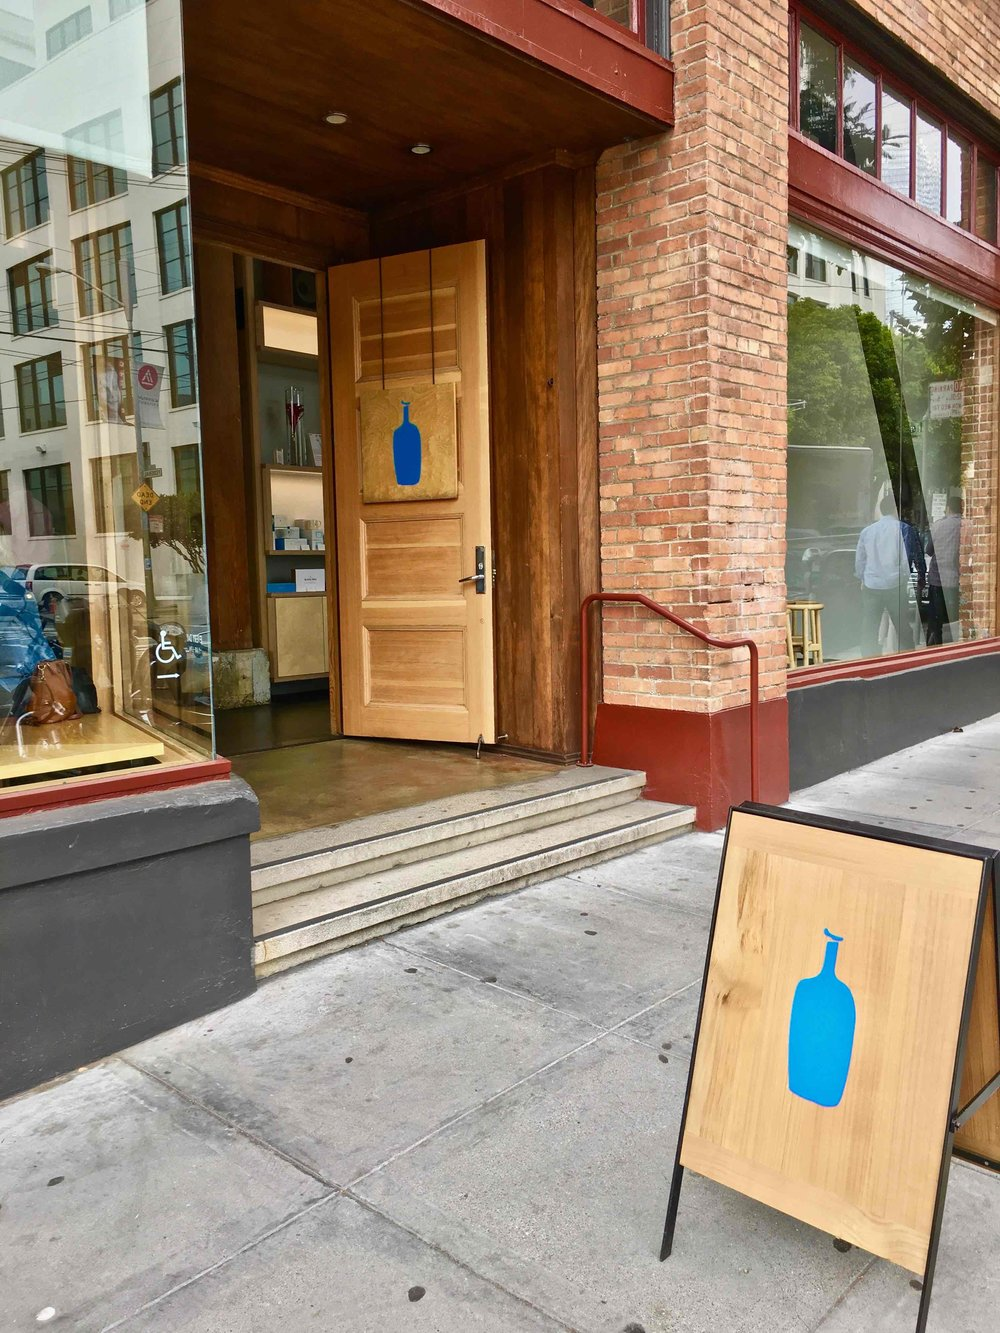 look ma! No line! (Blue Bottle Coffee in SOMA)